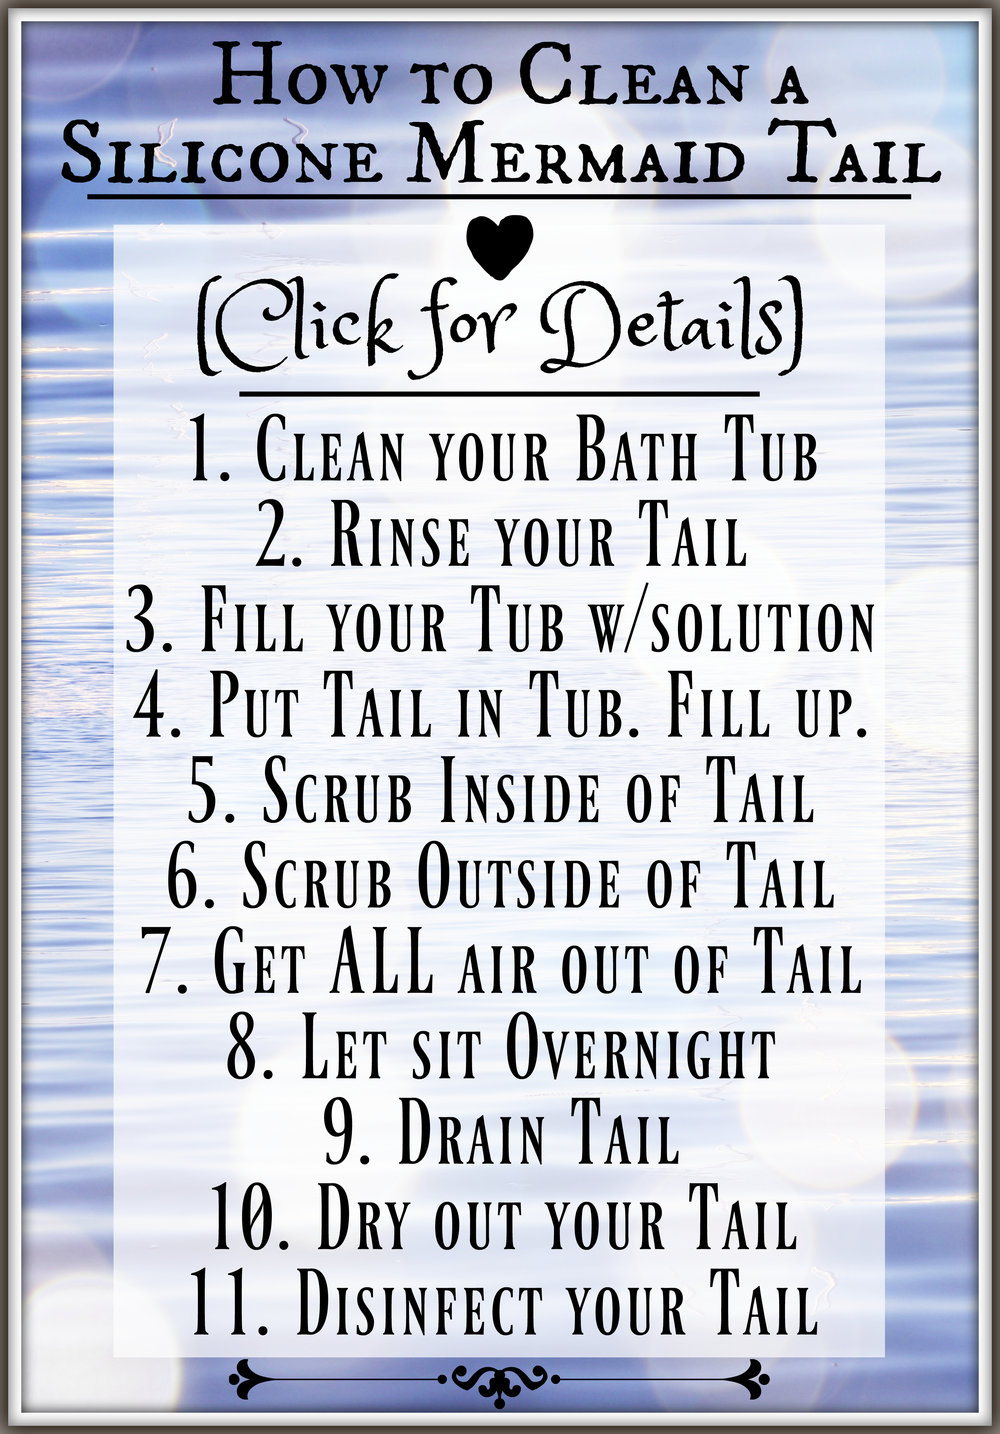 How to Clean a Silicone Mermaid Tail: Mermaid Tail Cleaning & Drying Tutorial for Professional Mermaids. How do you clean a silicone mermaid tail? Find video tutorials here, along with links to ALL of the products and tools you need to wash your tail.